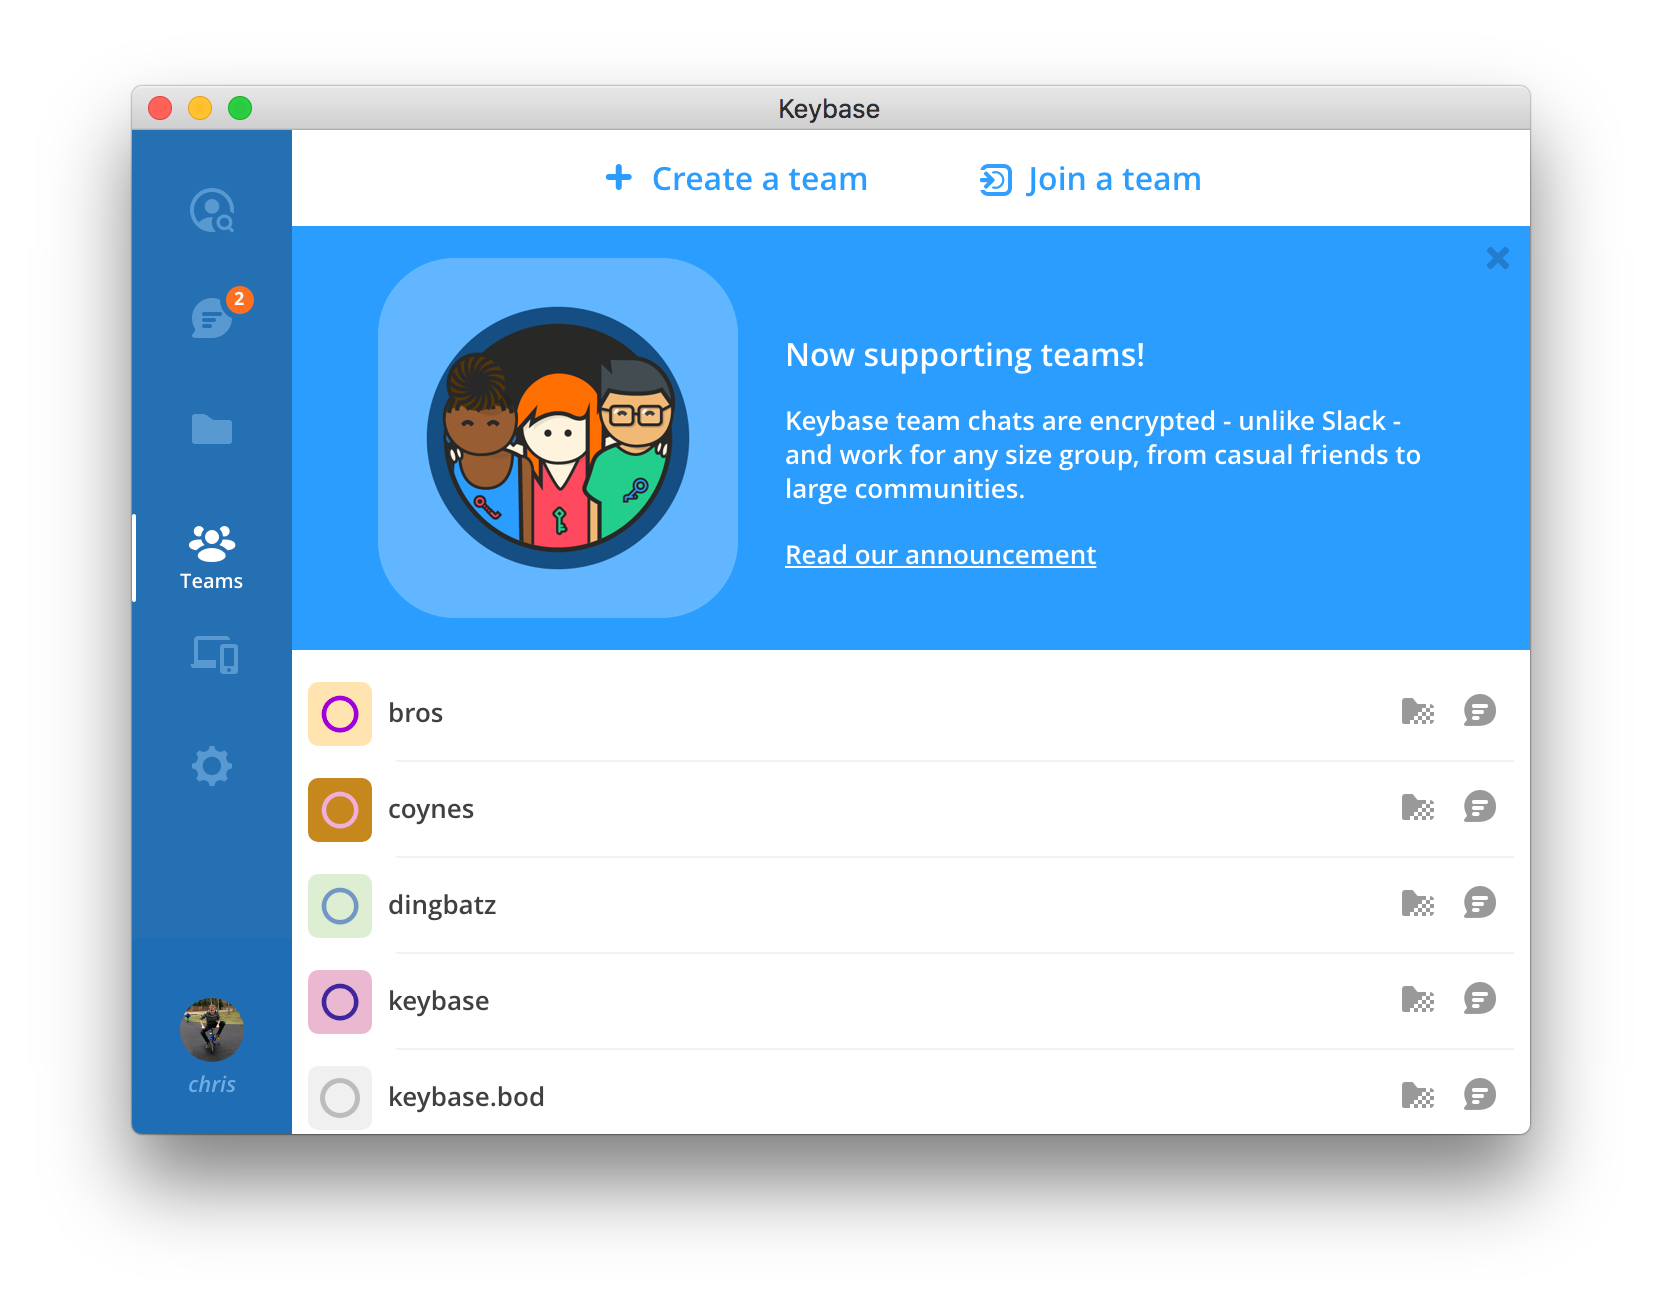 OkCupid Co-Founders Releasing Encrypted Competitor To Slack - Global